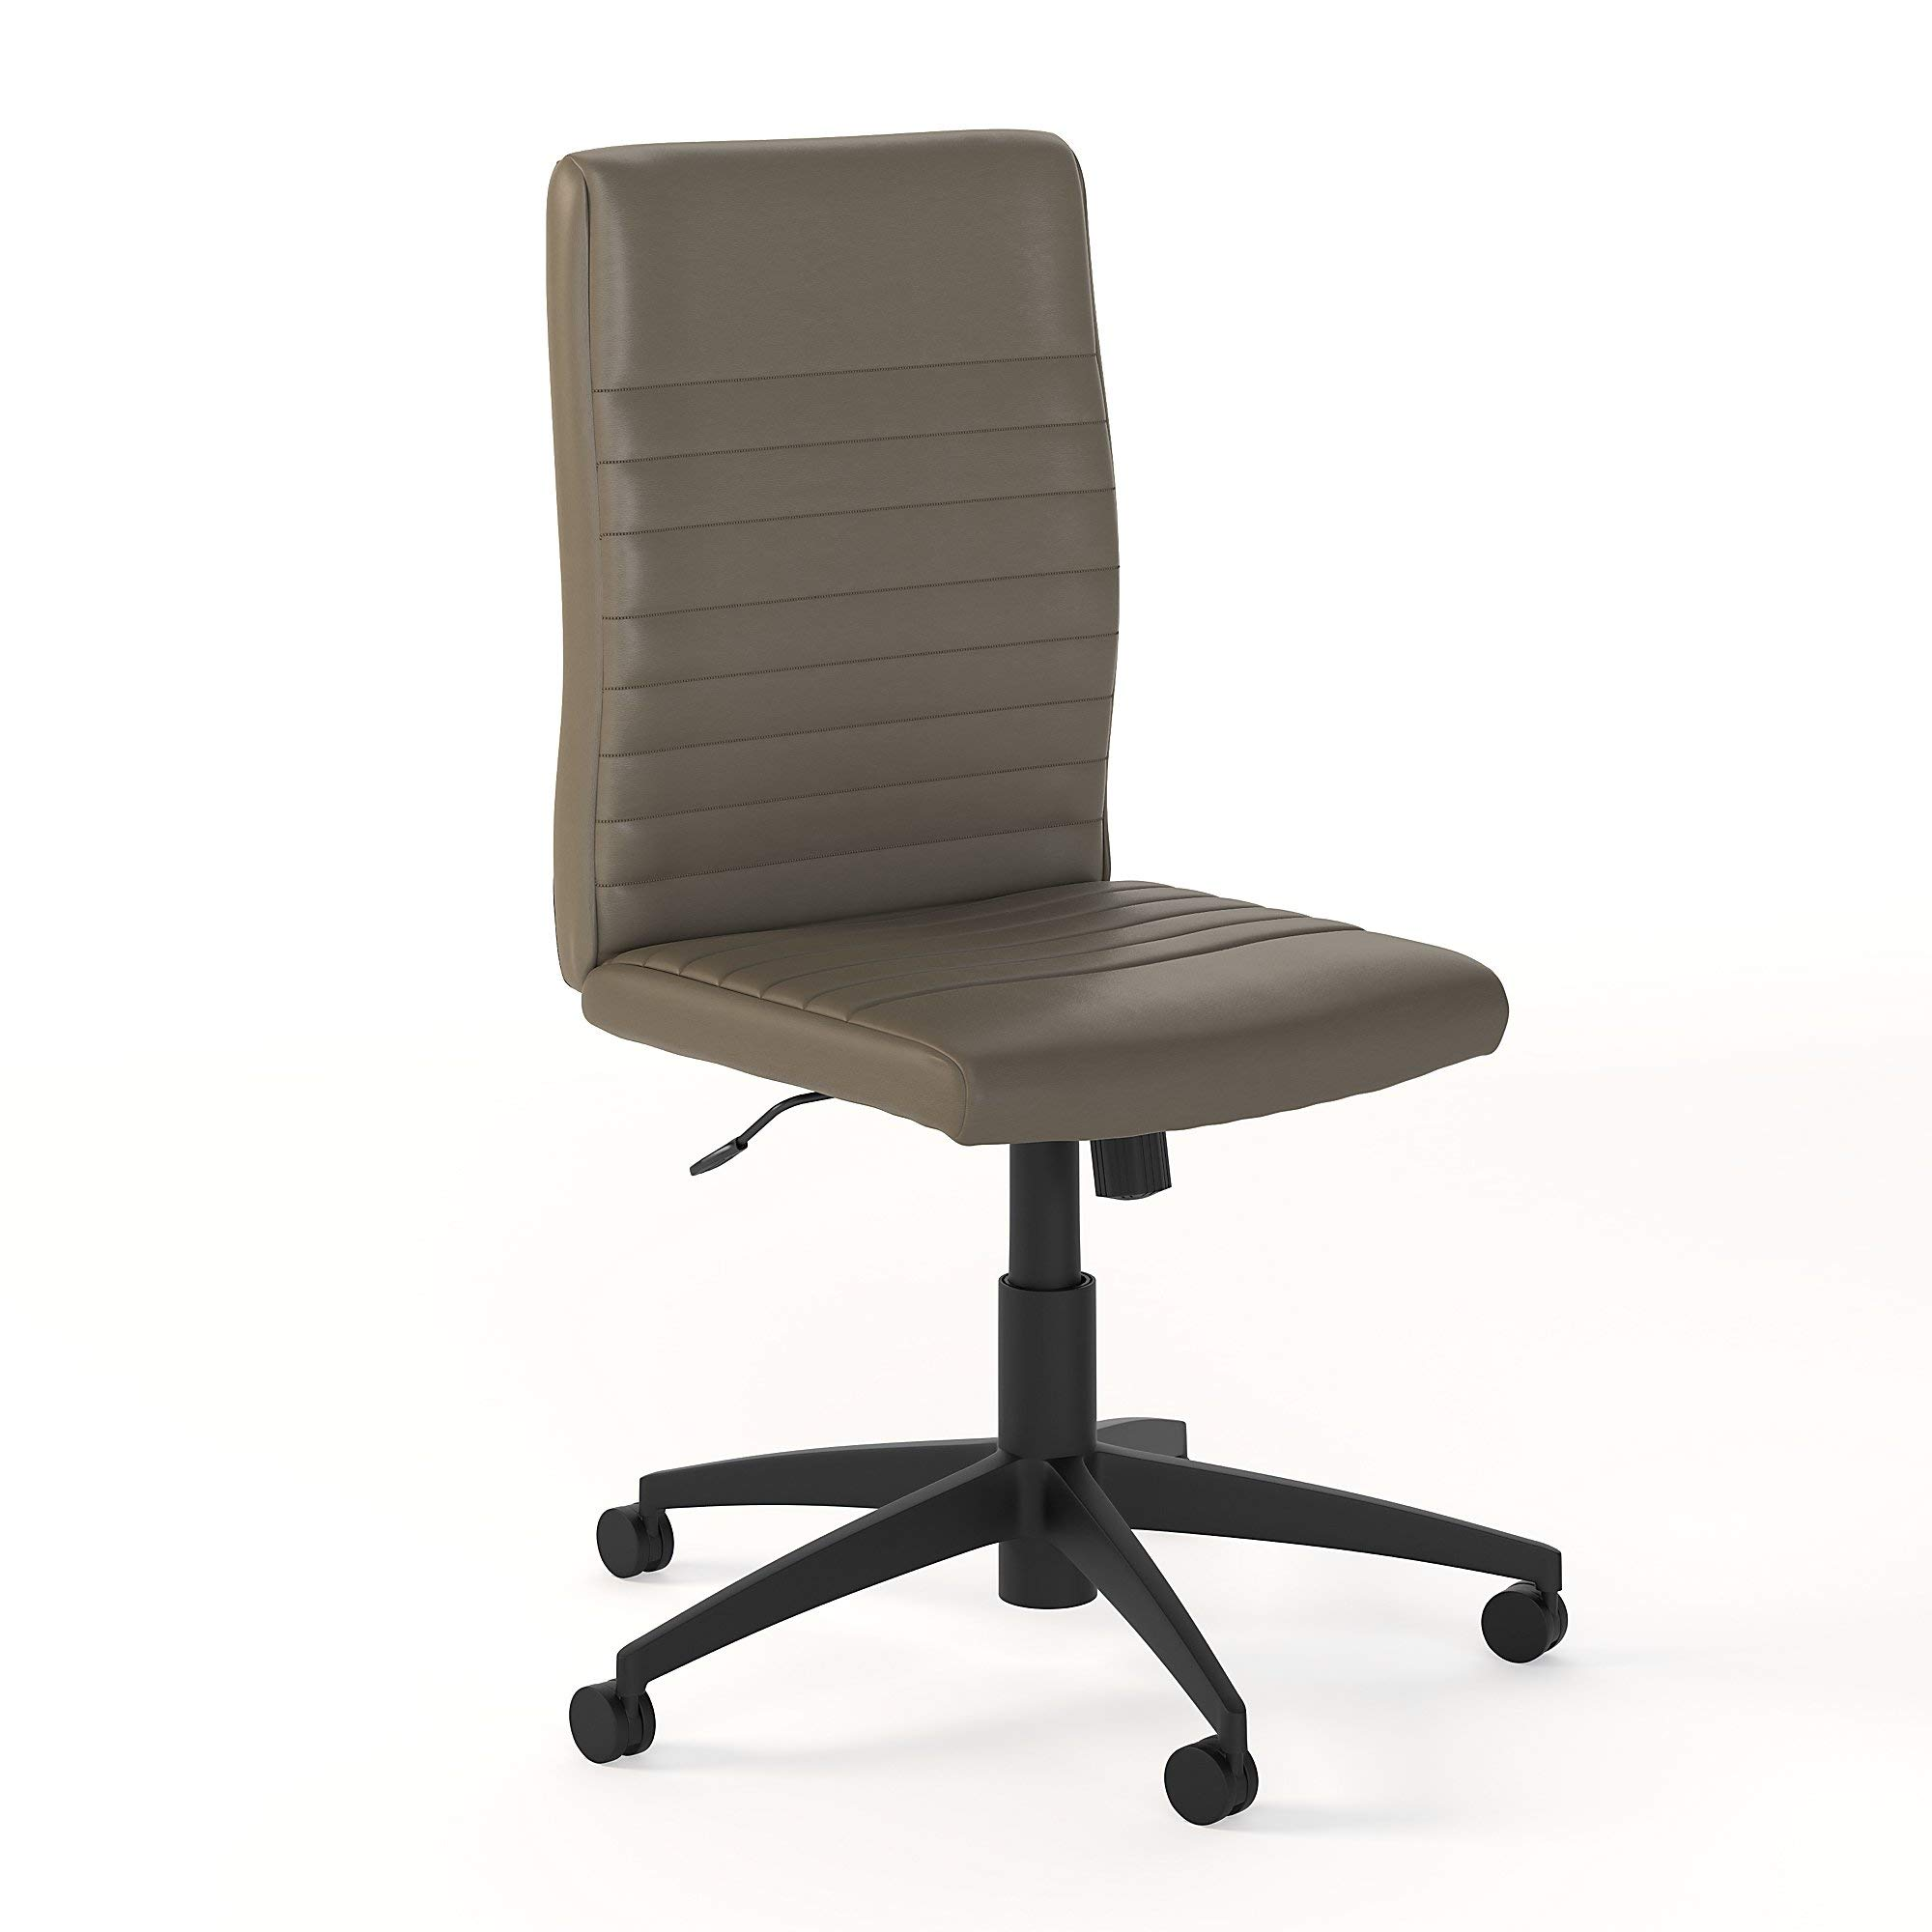 Bush Furniture Refinery Mid Back Ribbed Leather Office Chair in Washed Gray